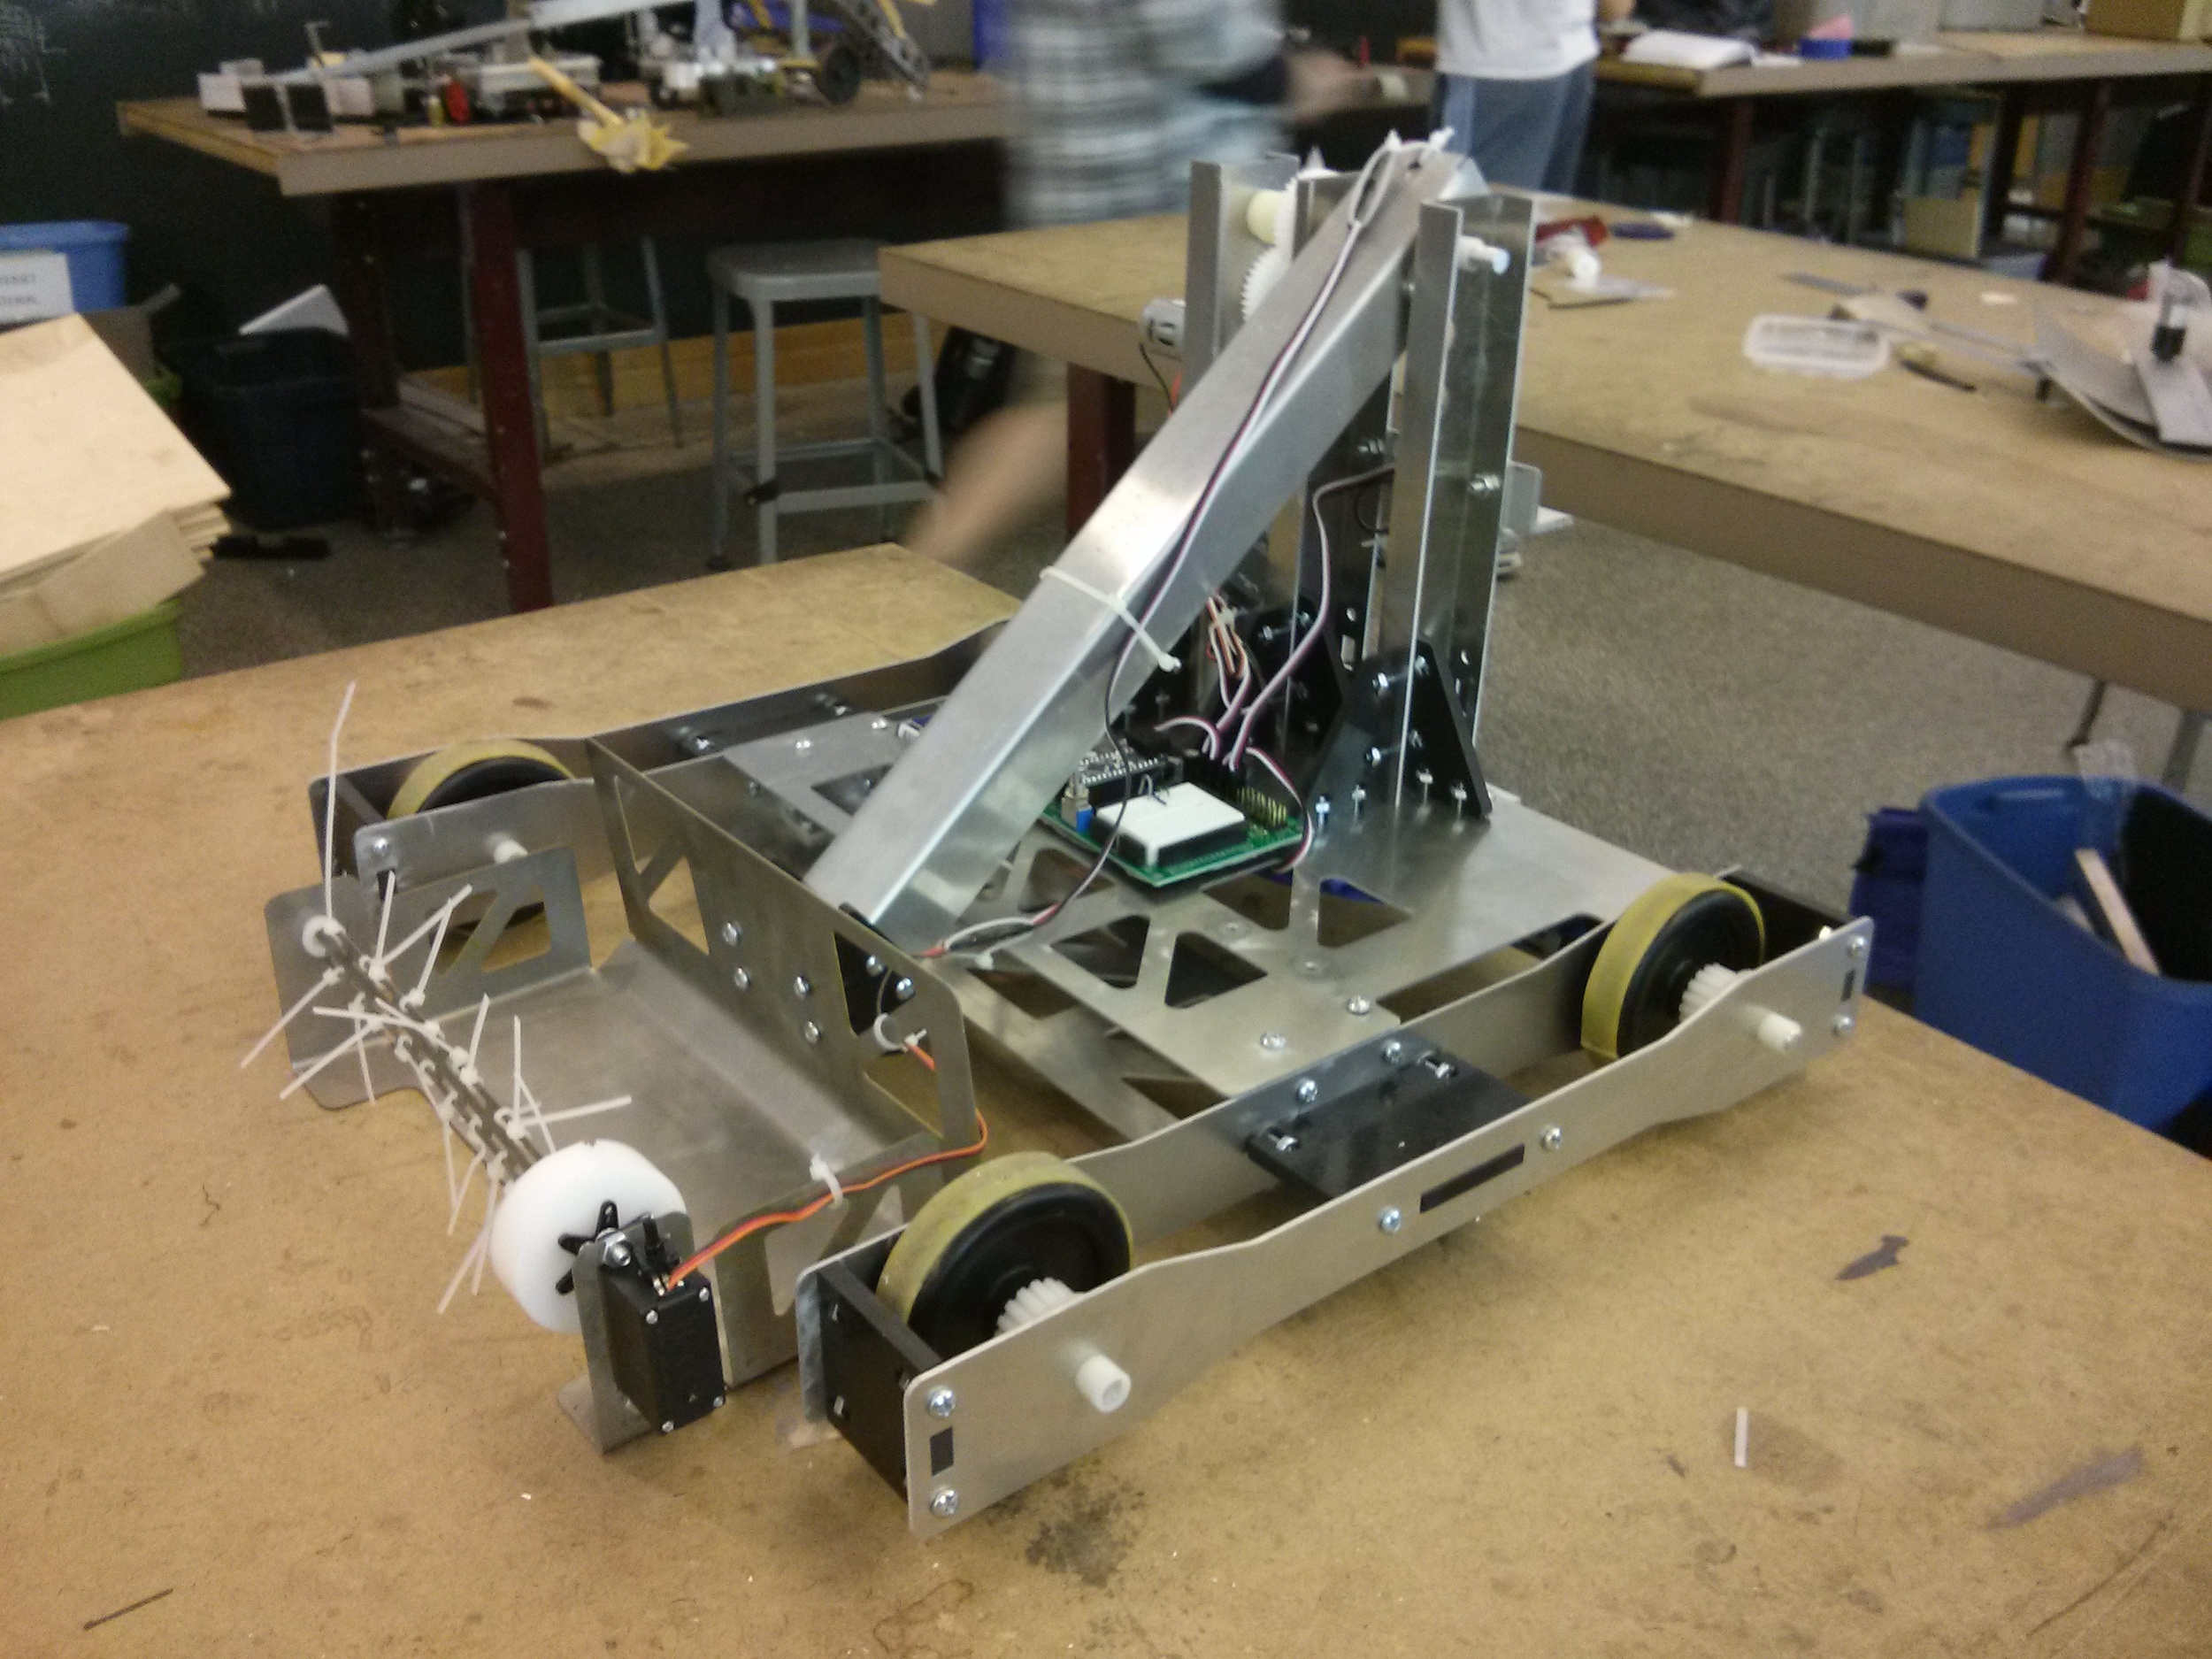 The final assembly of the robot was relatively straight-forward due to planning and designing that was already done in CAD.